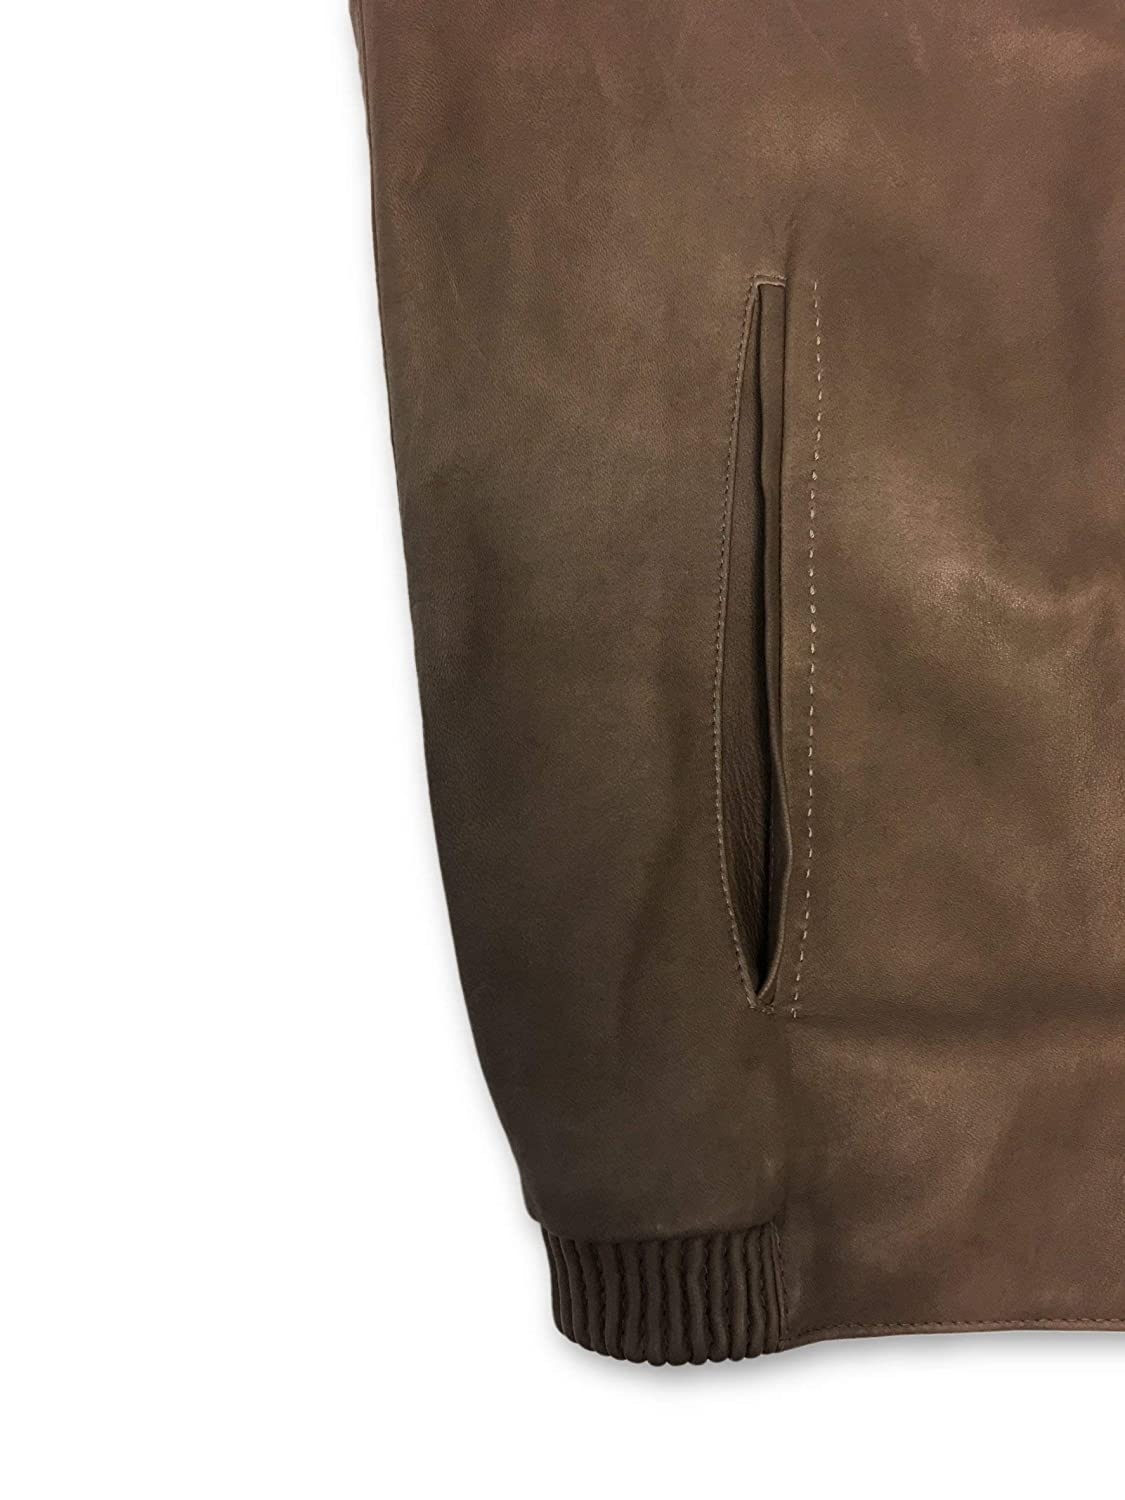 Pal Zileri Sartoriale Leather Jacket in Caramel Brown - Size 42R Leather: Amazon.es: Ropa y accesorios